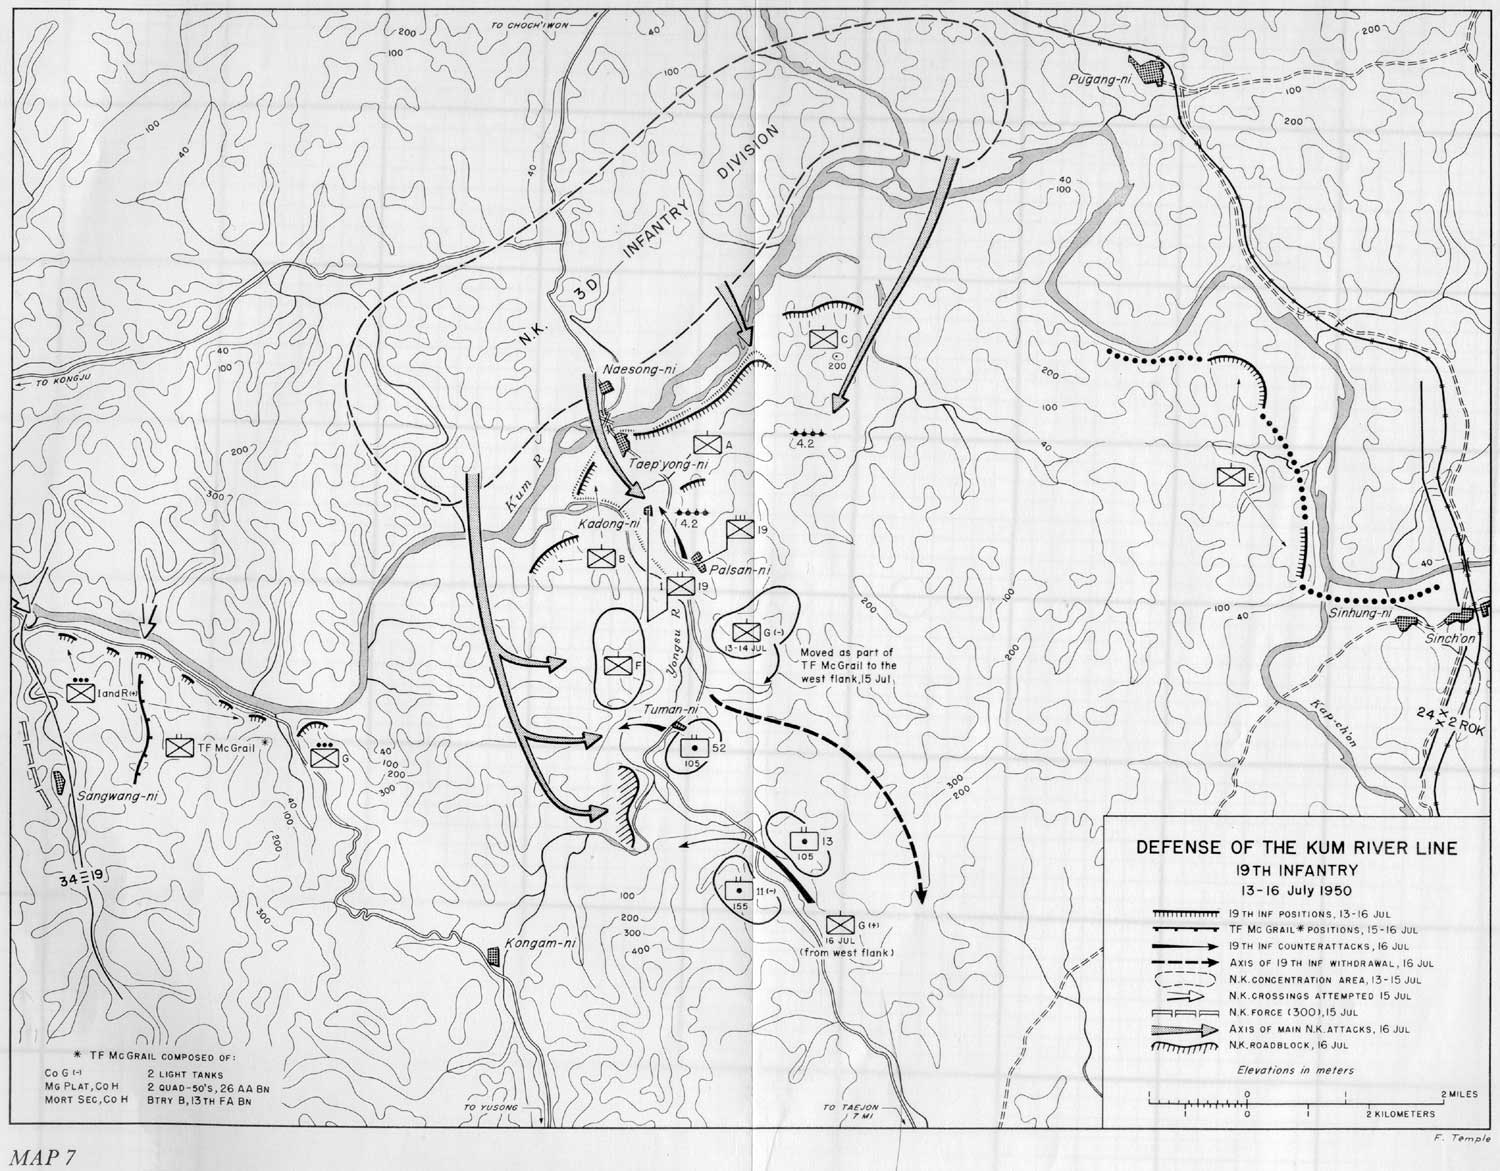 http://www.koreanwar2.org/kwp2/maps/south/SNK_MAP_7_1500W.jpg